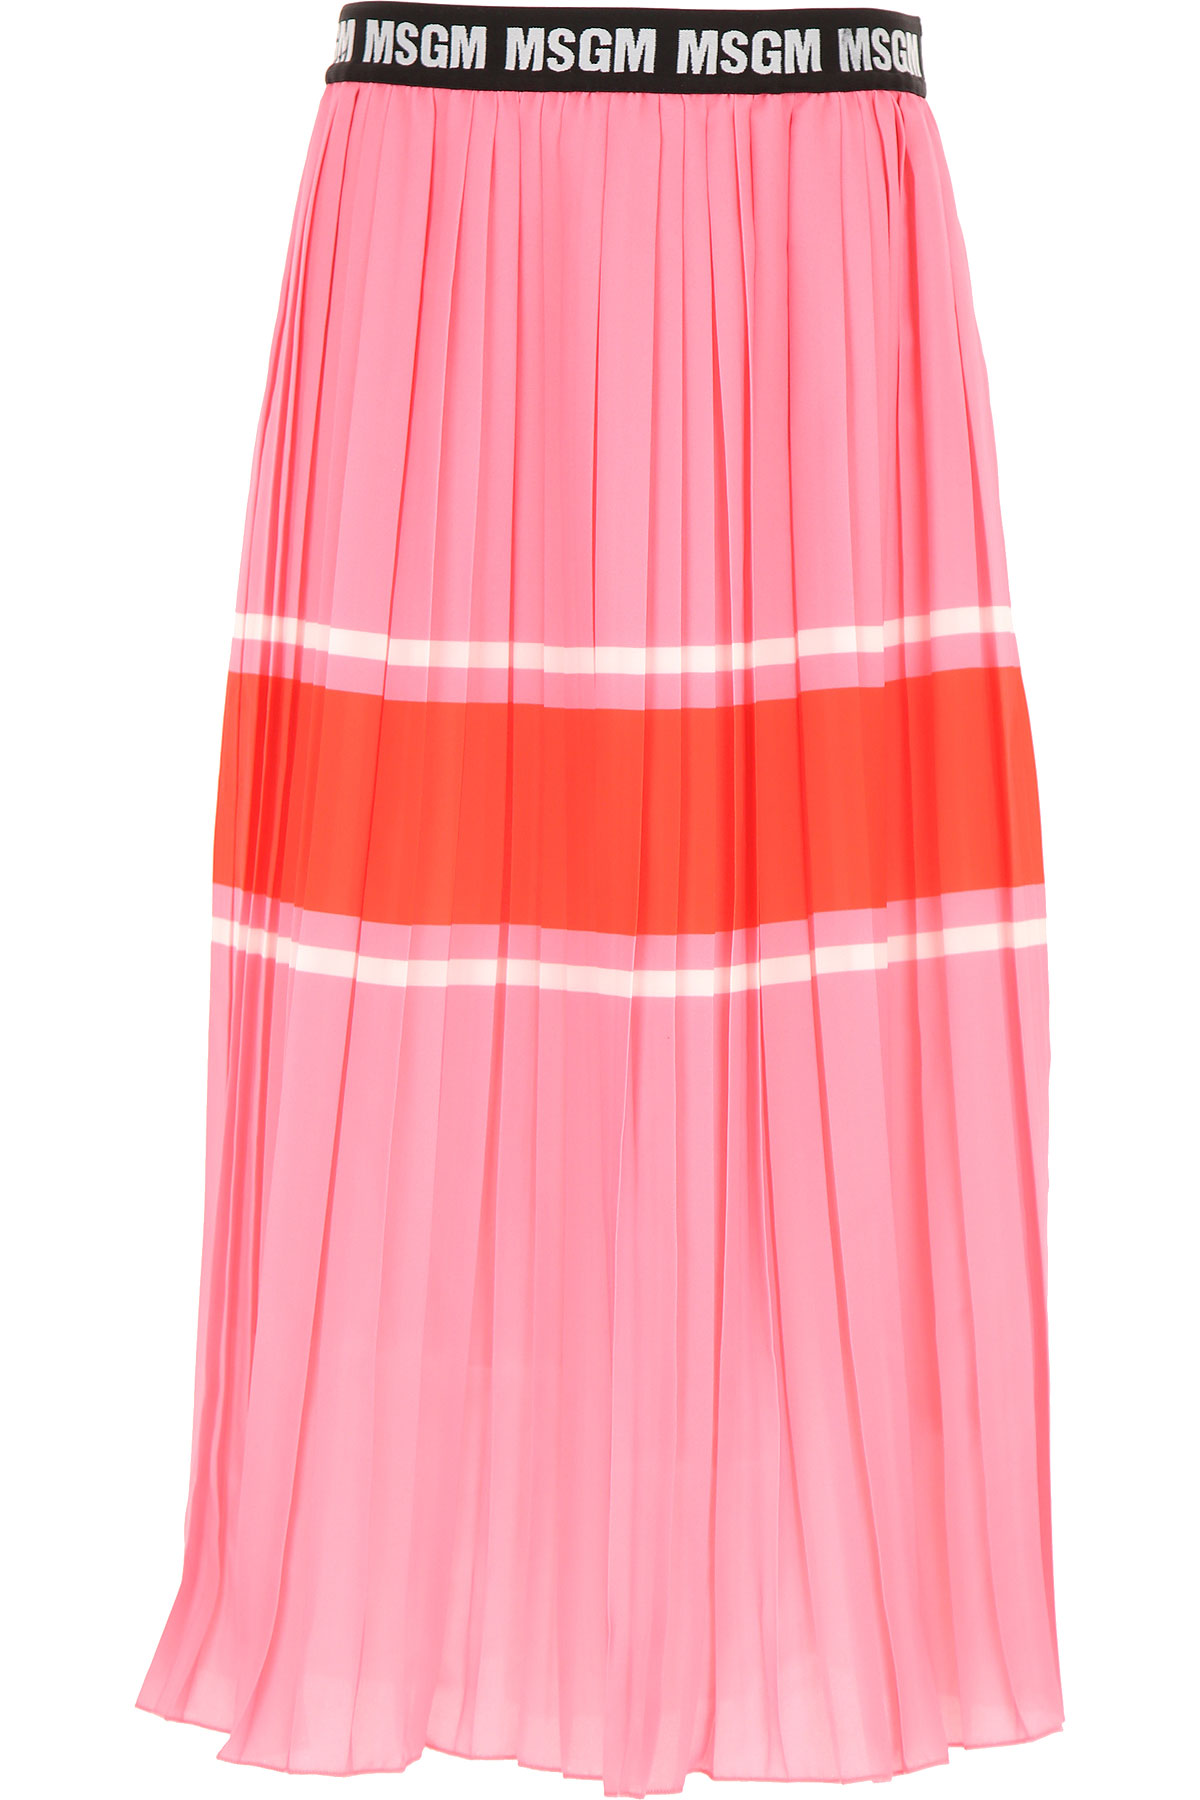 MSGM Kids Skirts for Girls, Pink, polyester, 2017, 10Y 8Y